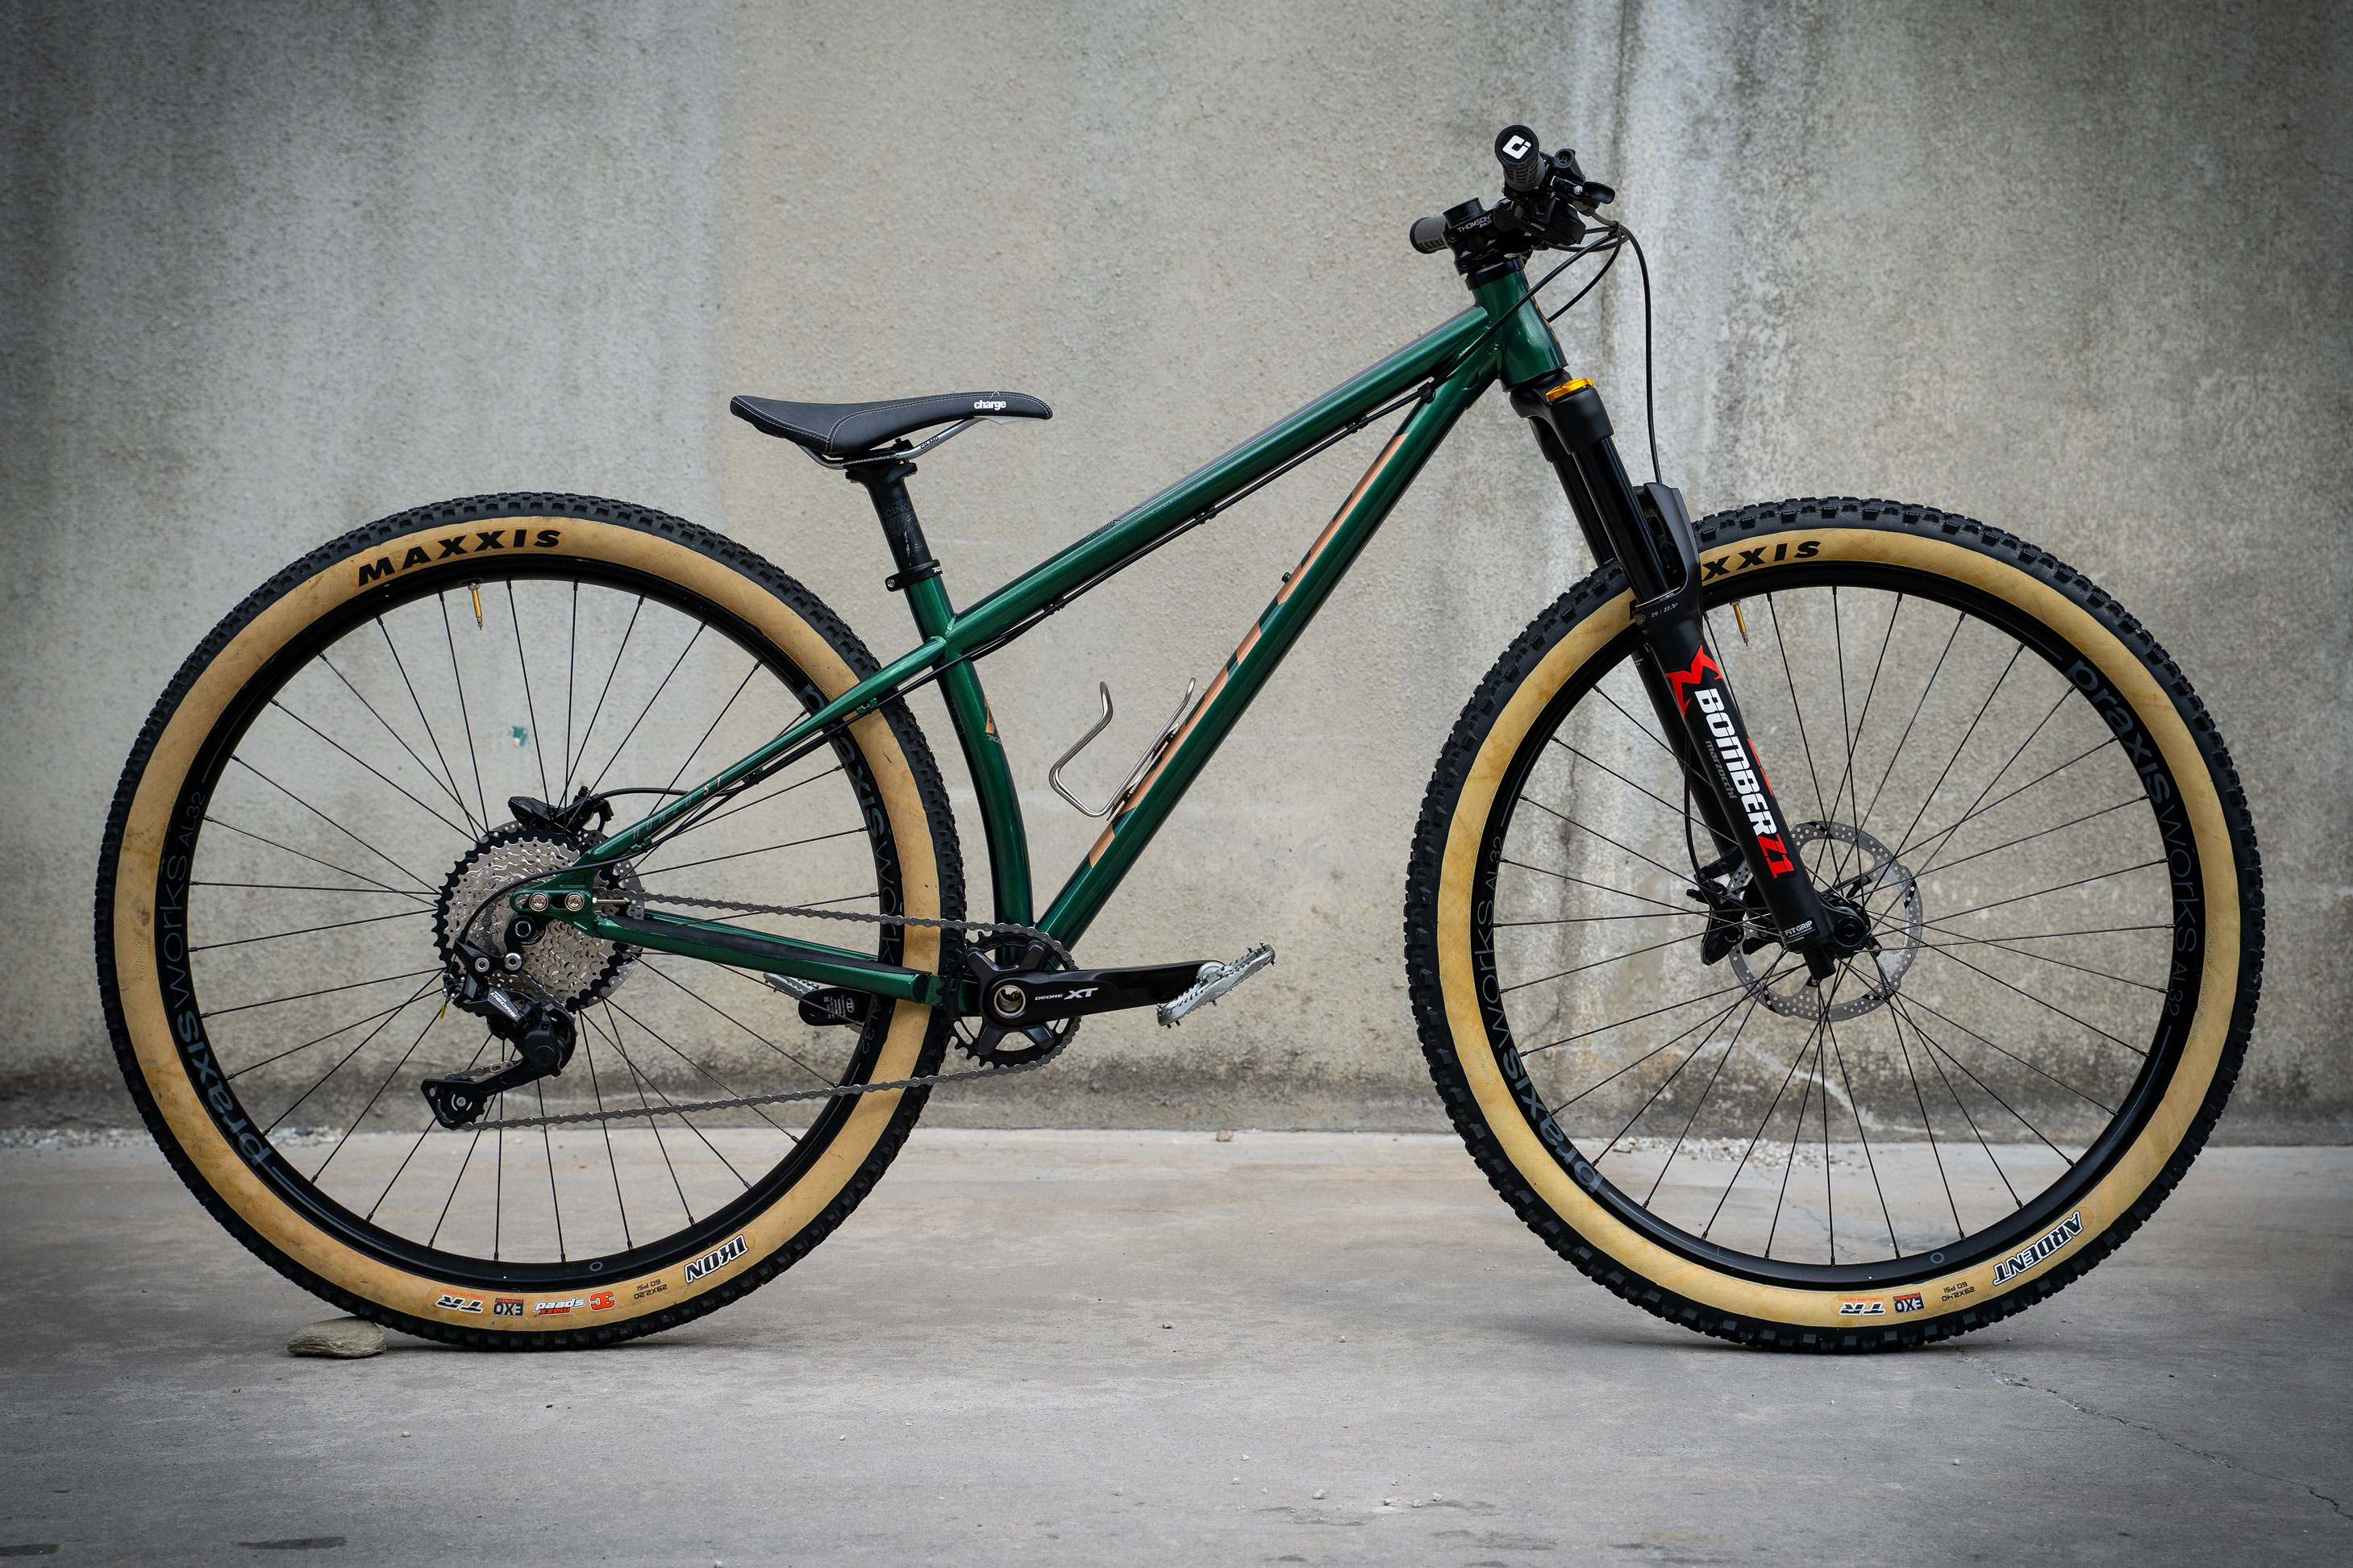 Kona Dream Builds: Matt's Cute Little Honzo